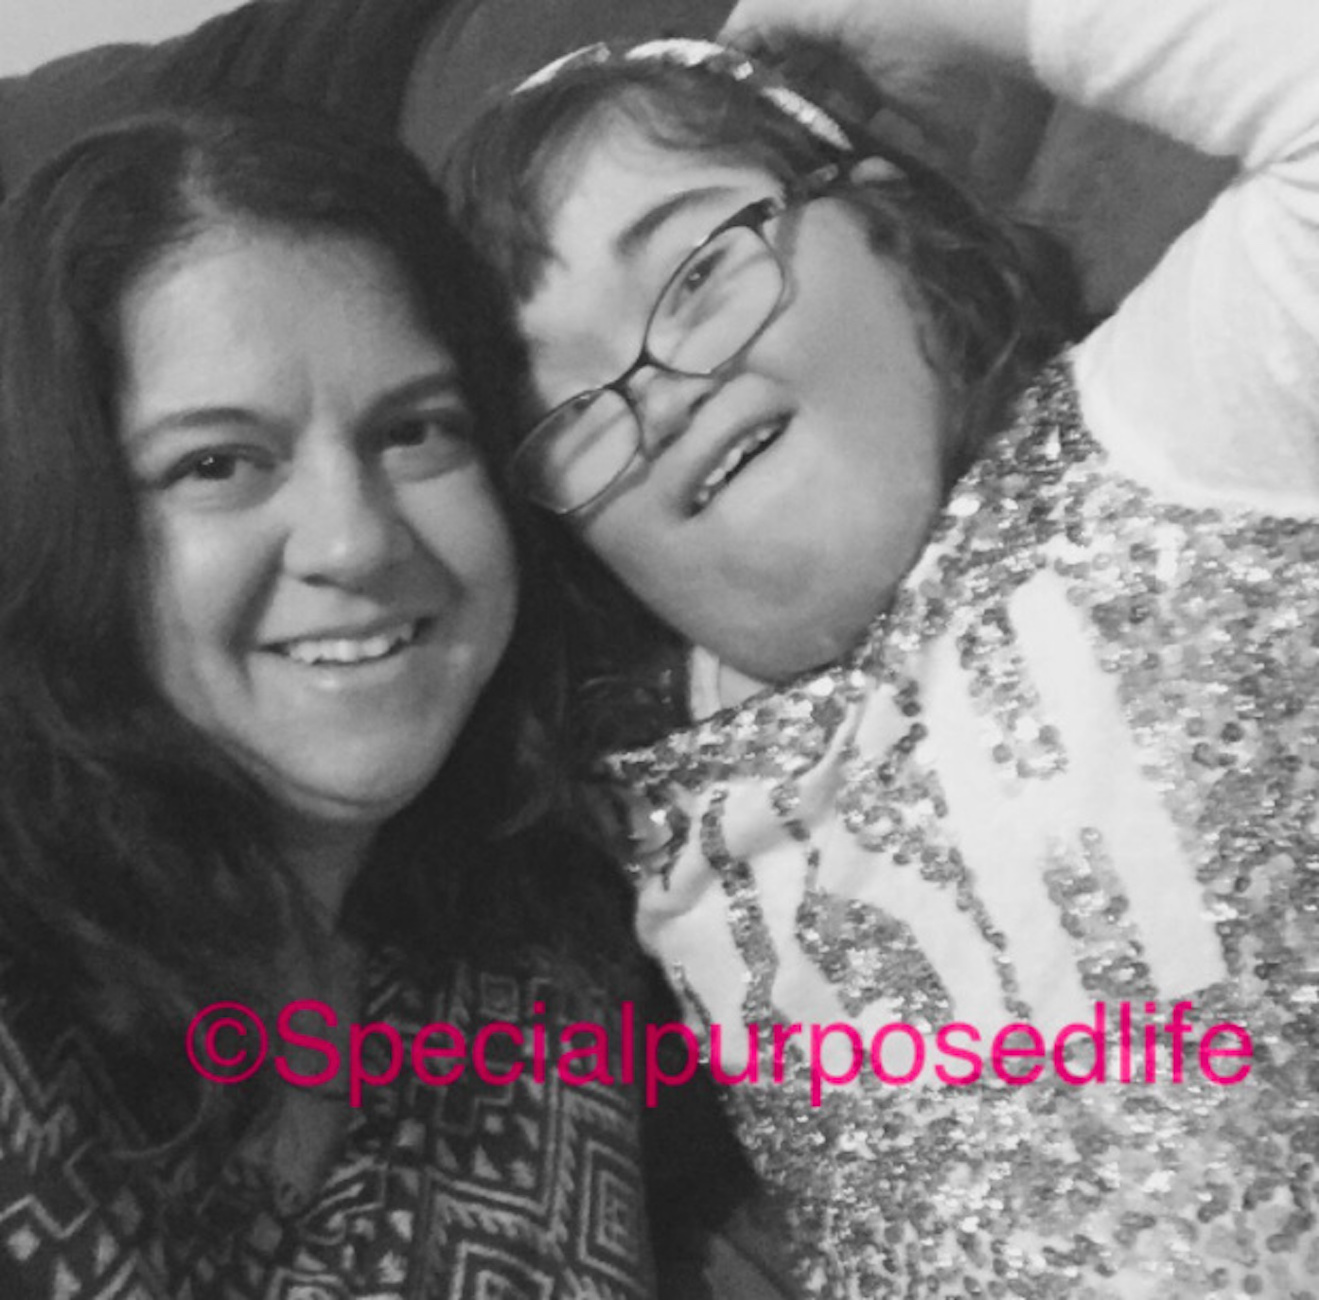 Black and white photo of mom and daughter with [@specialpurposedlife] on the photo